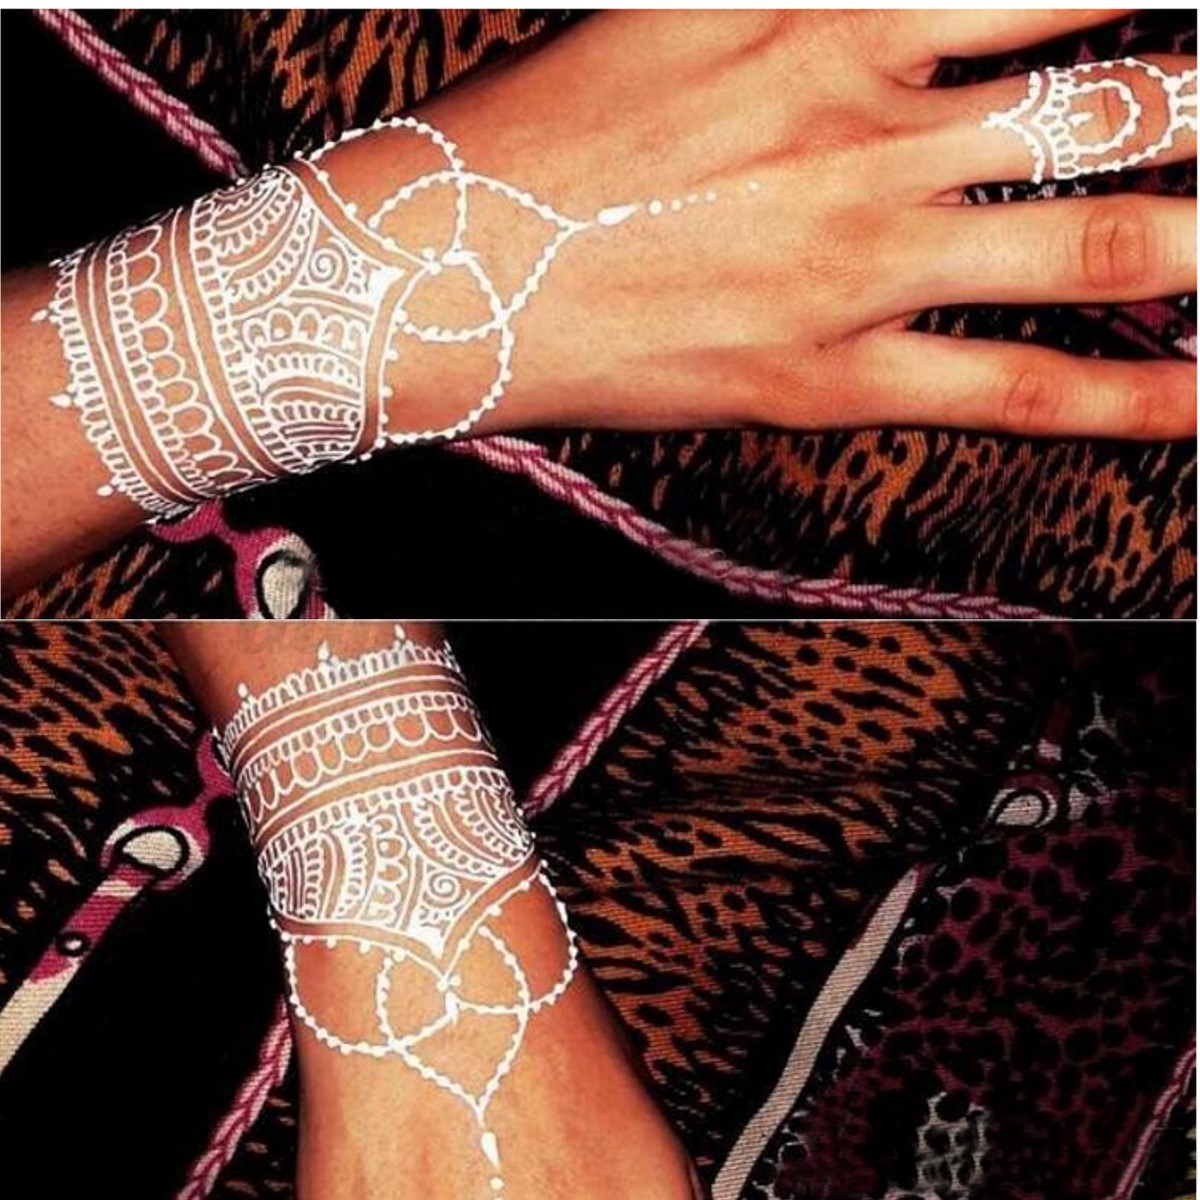 Tattoos Henna For Body: White Natural Herbal Henna Cones Temporary Tattoo Kit Body